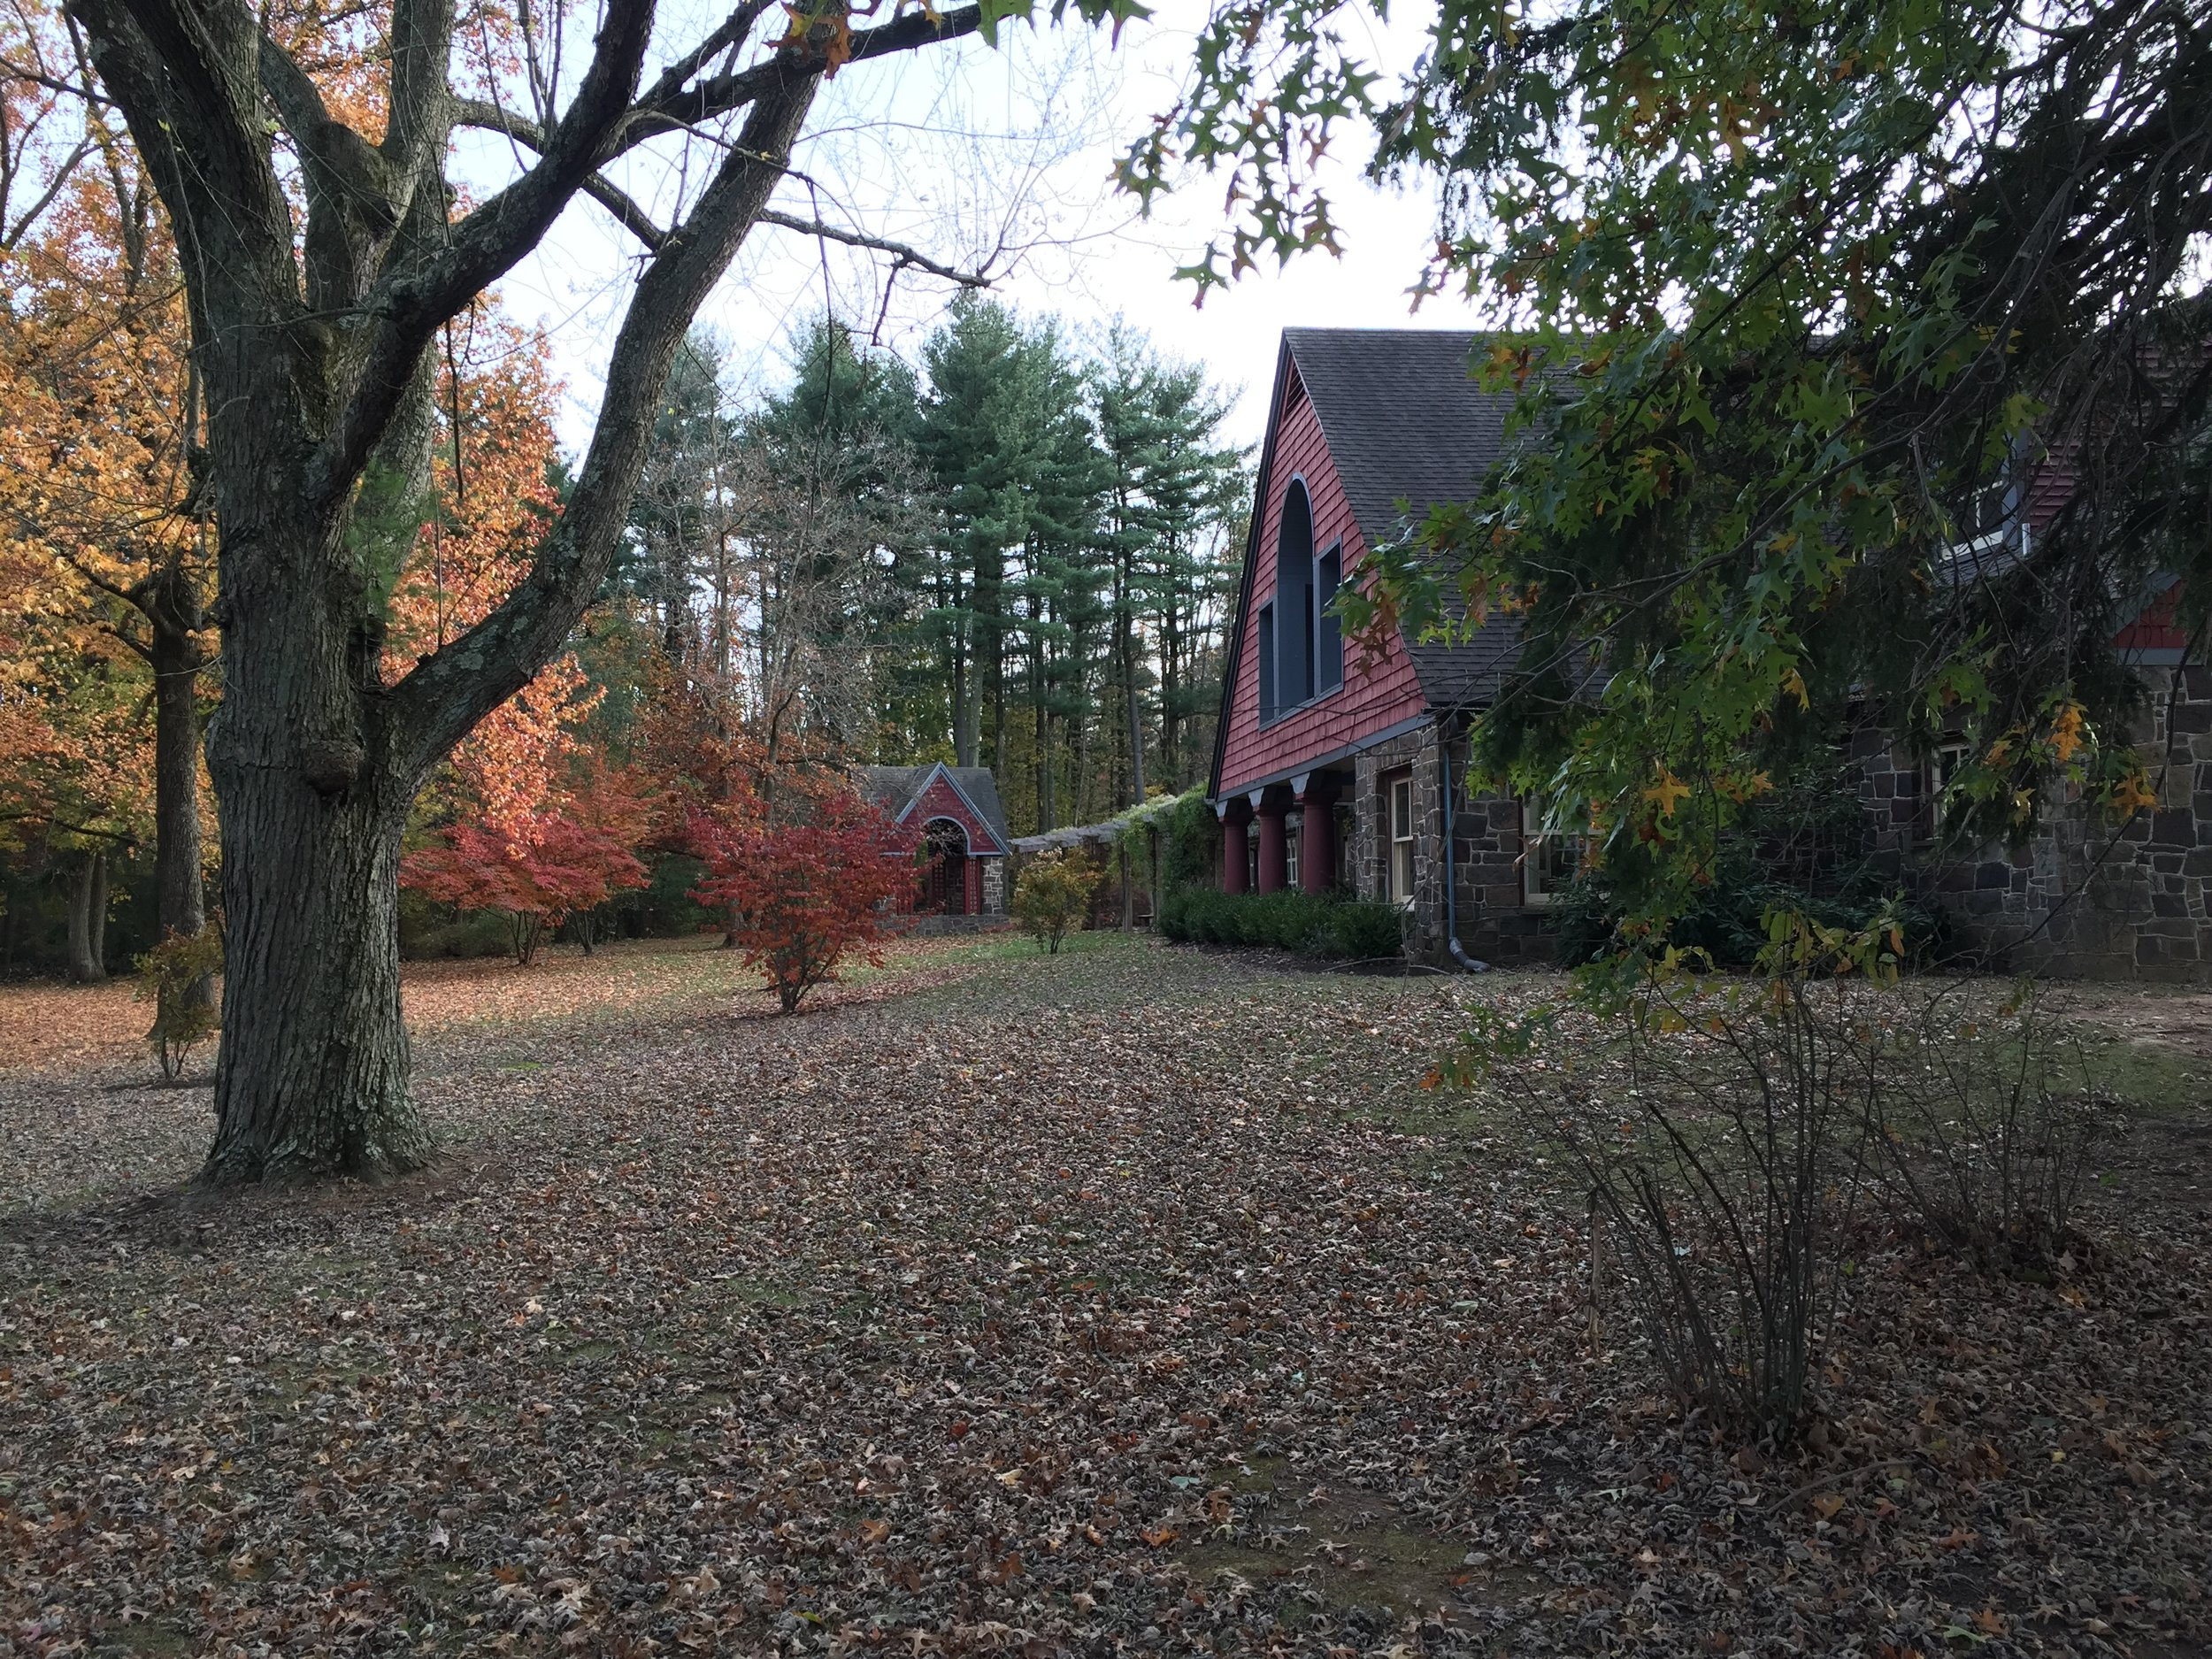 The chalet that greets the visitors initially on the left side of the driveway provides a dramatic bit of   architecture amidst Buck County foliage.